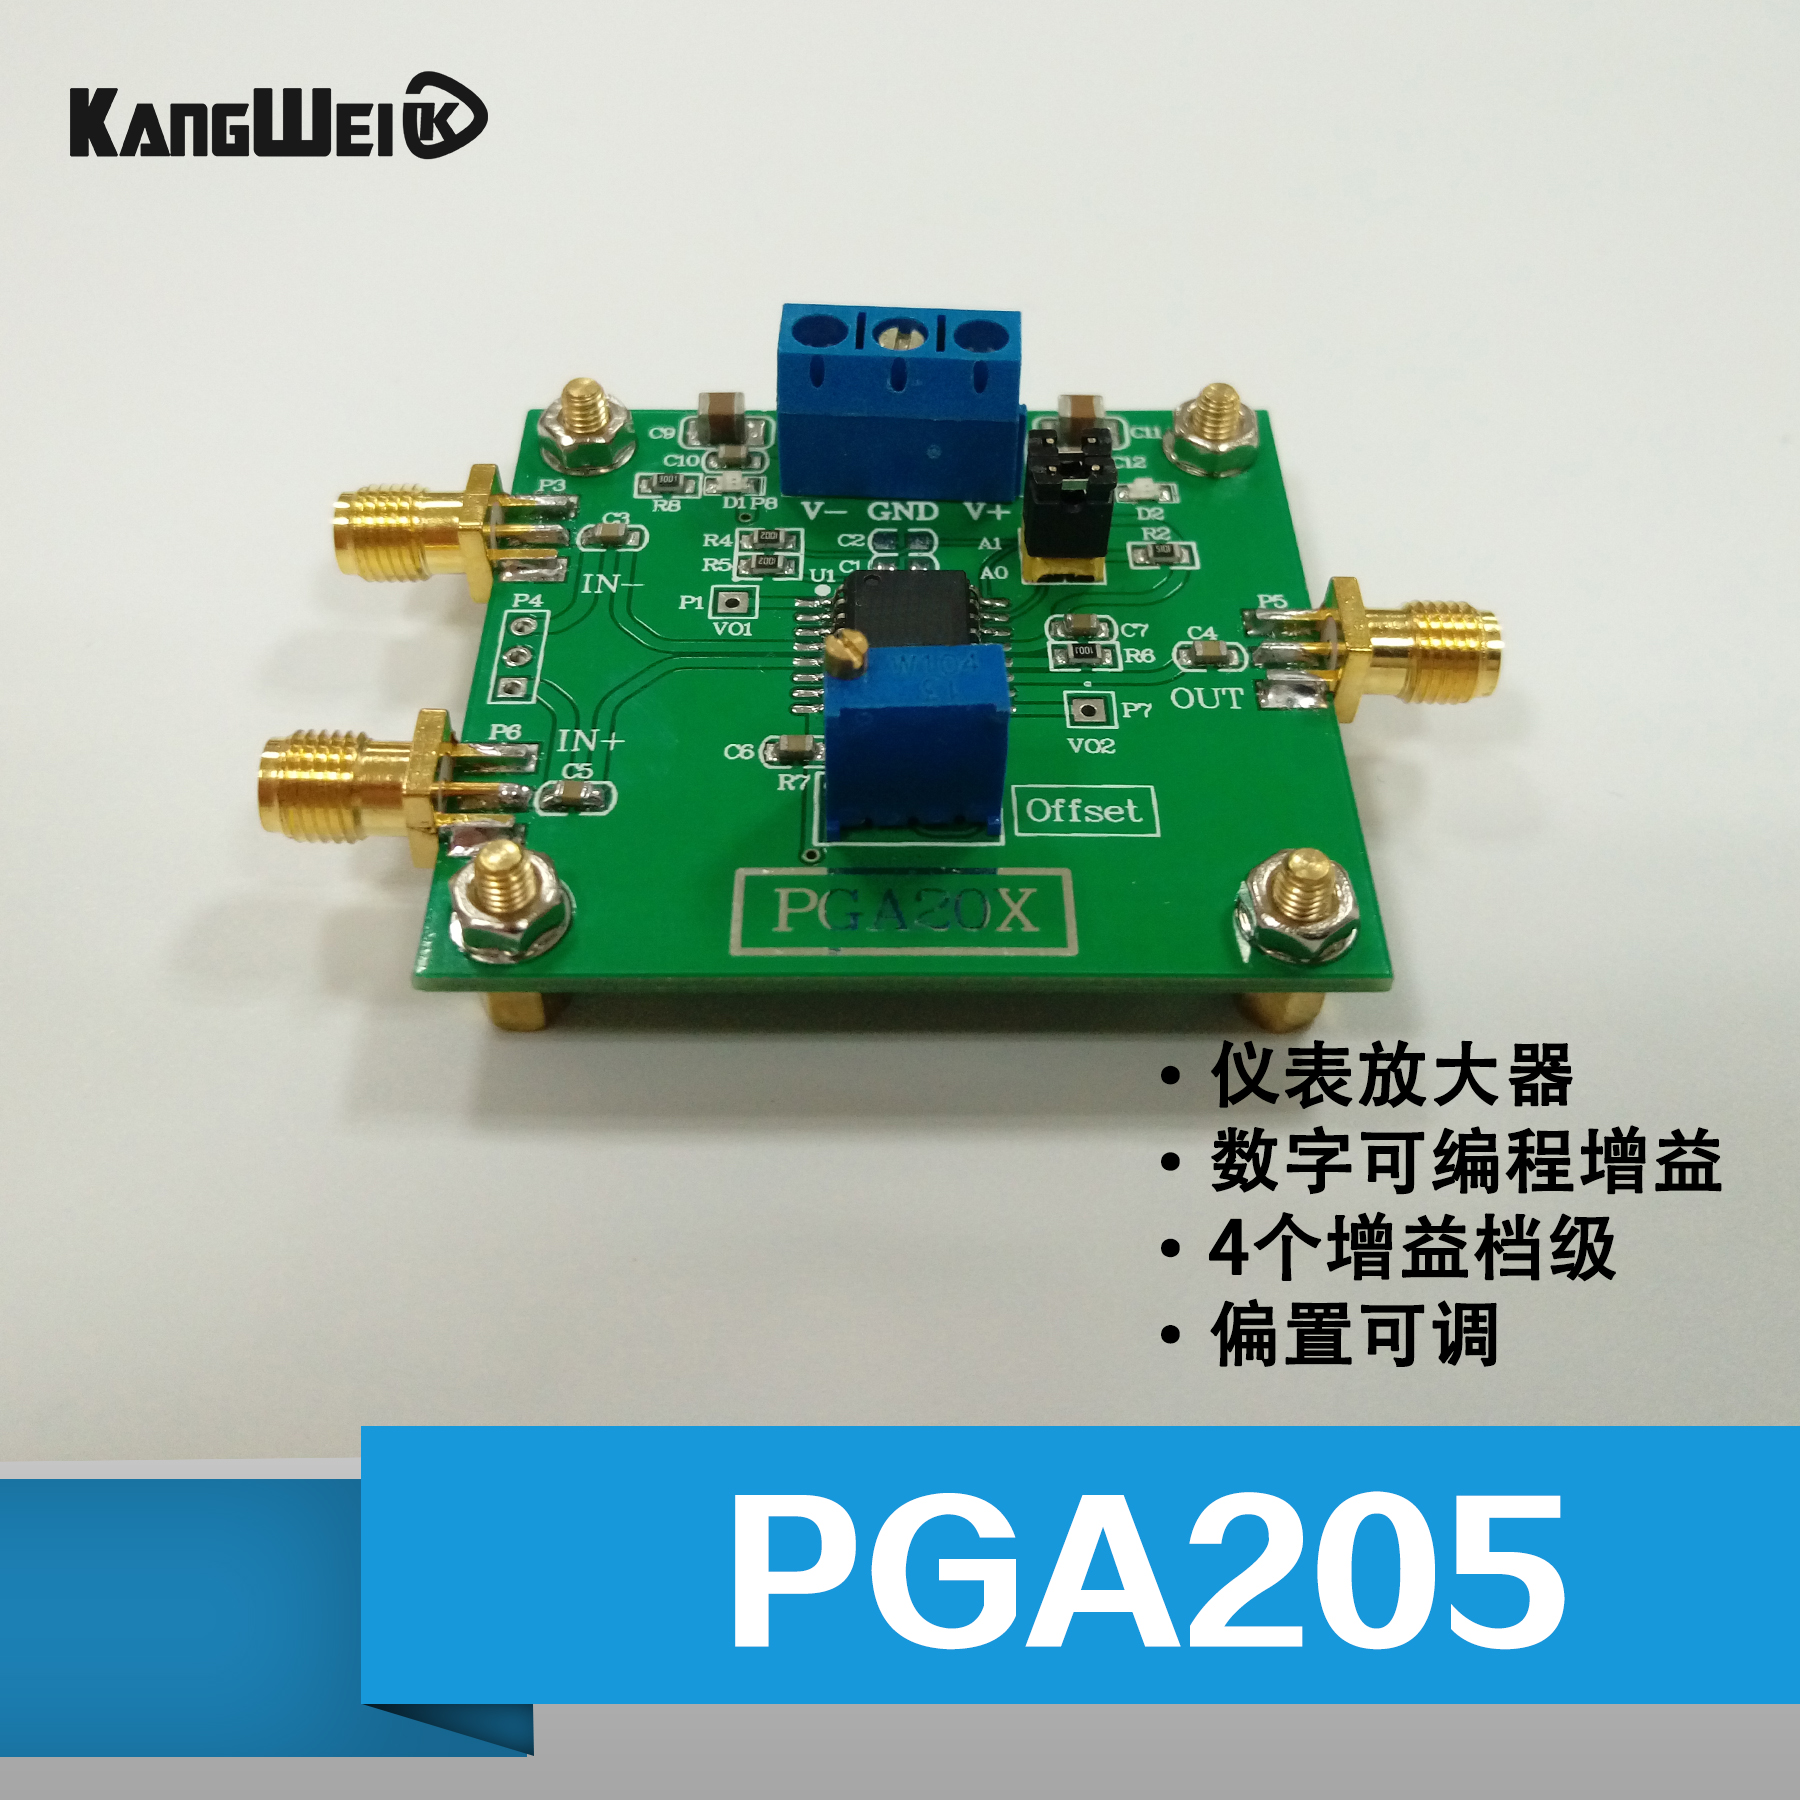 PGA205 module, NC gain amplifier, PGA204, instrument amplifier bias, adjustable offsetPGA205 module, NC gain amplifier, PGA204, instrument amplifier bias, adjustable offset